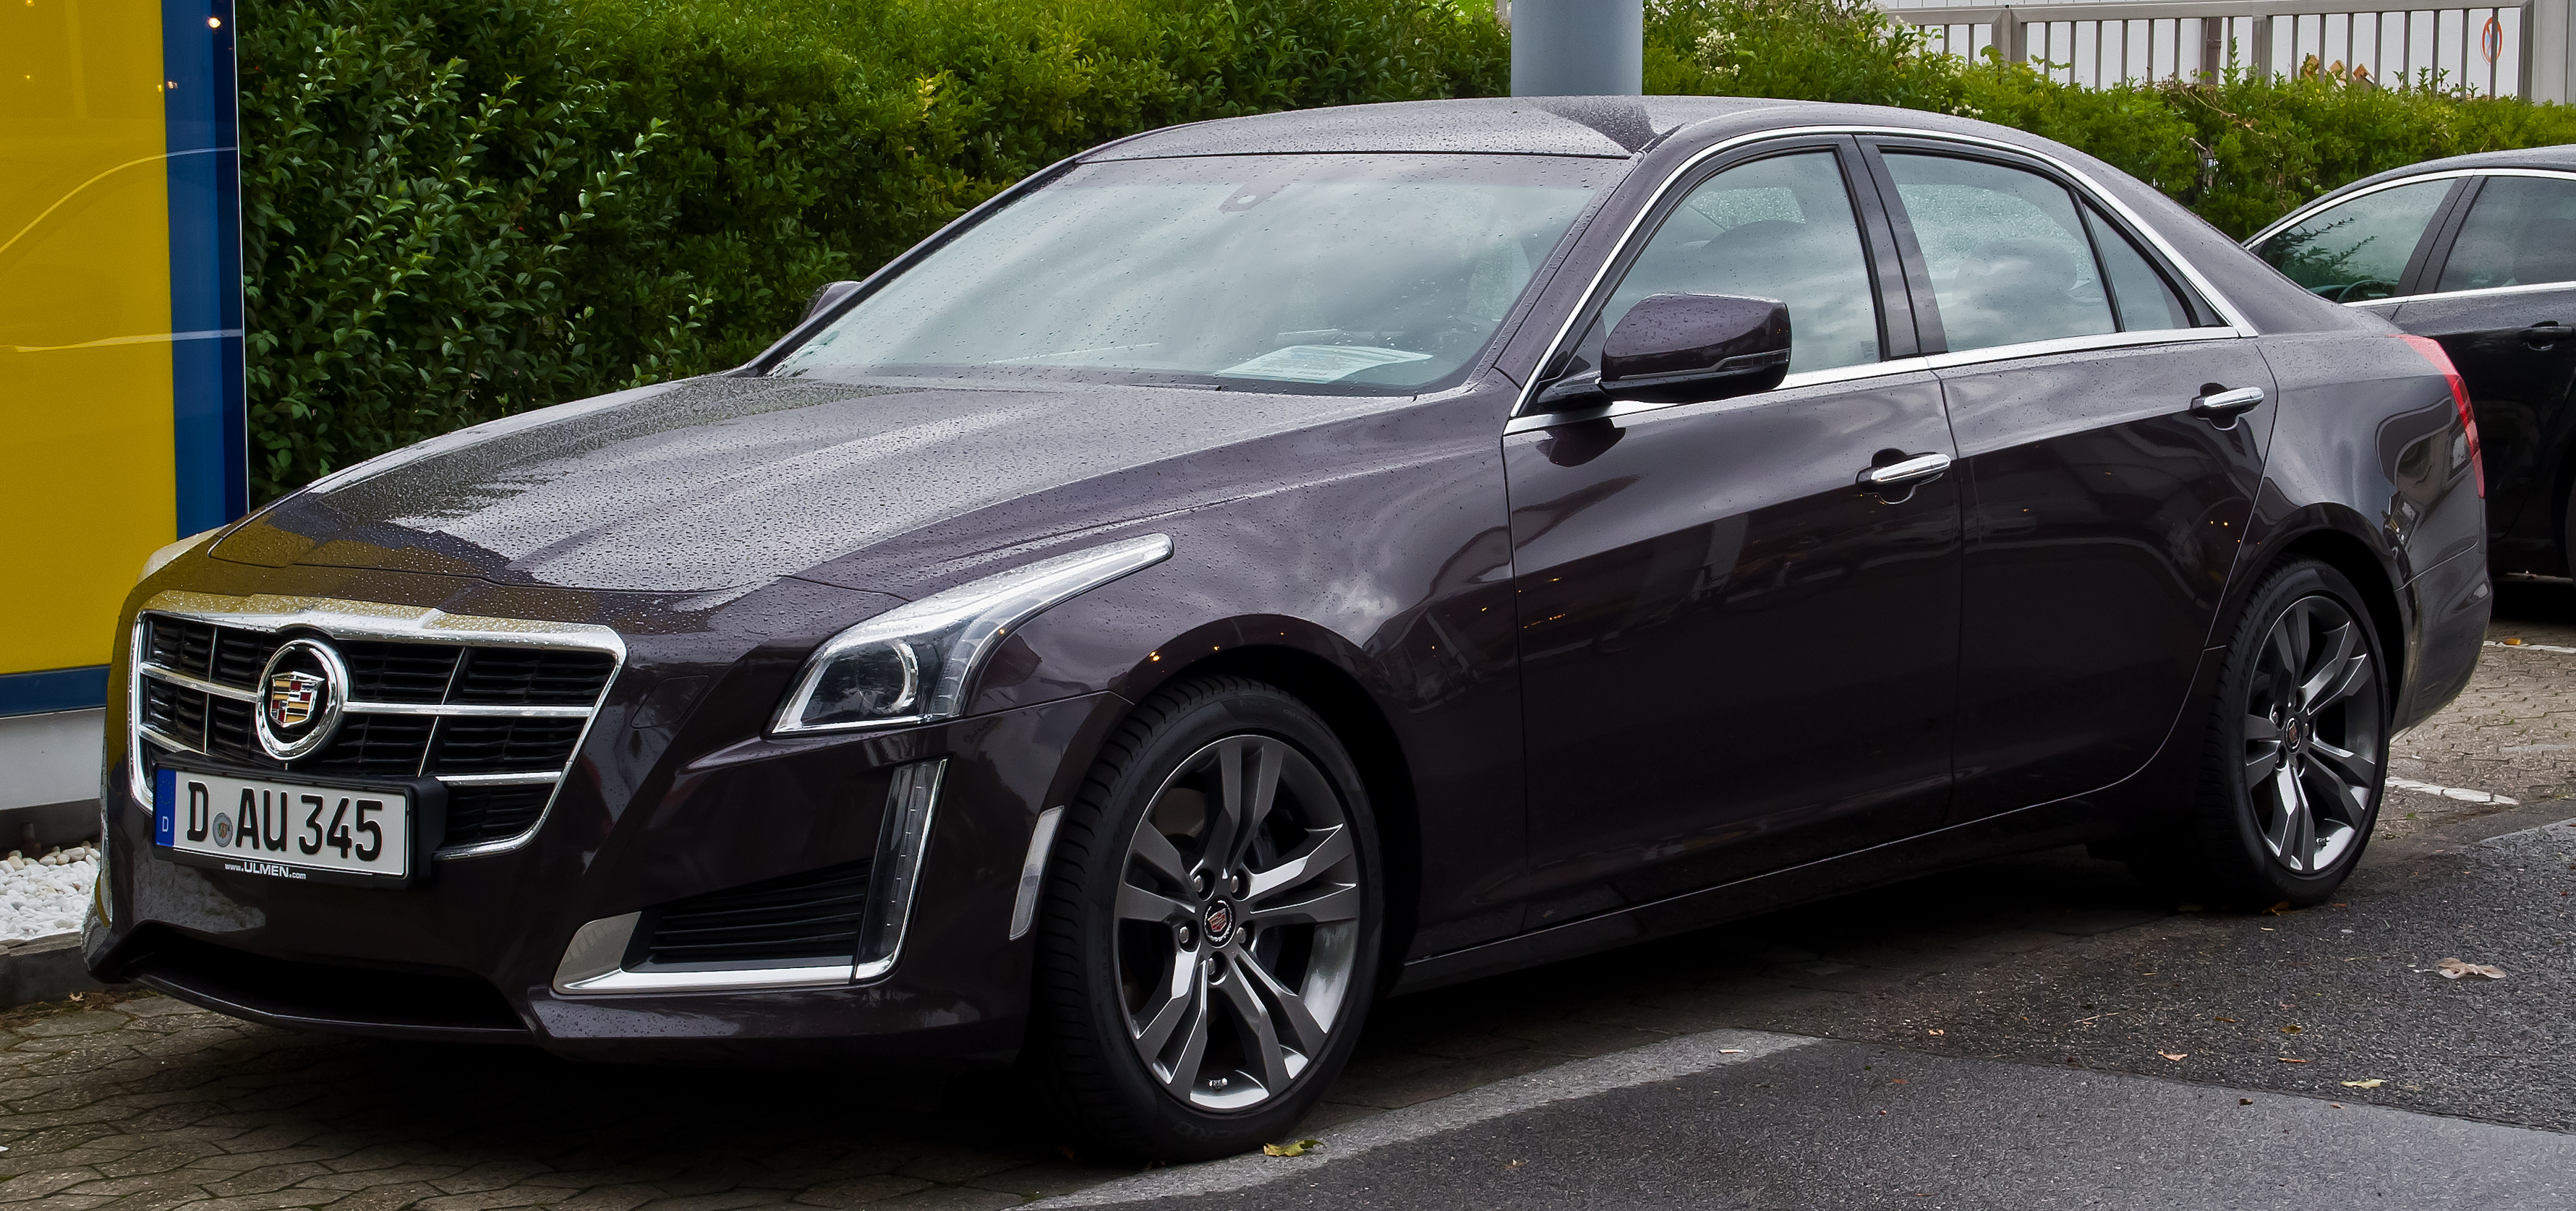 File:Cadillac CTS 2.0 Turbo Luxury (III) – Frontansicht, 5 ...